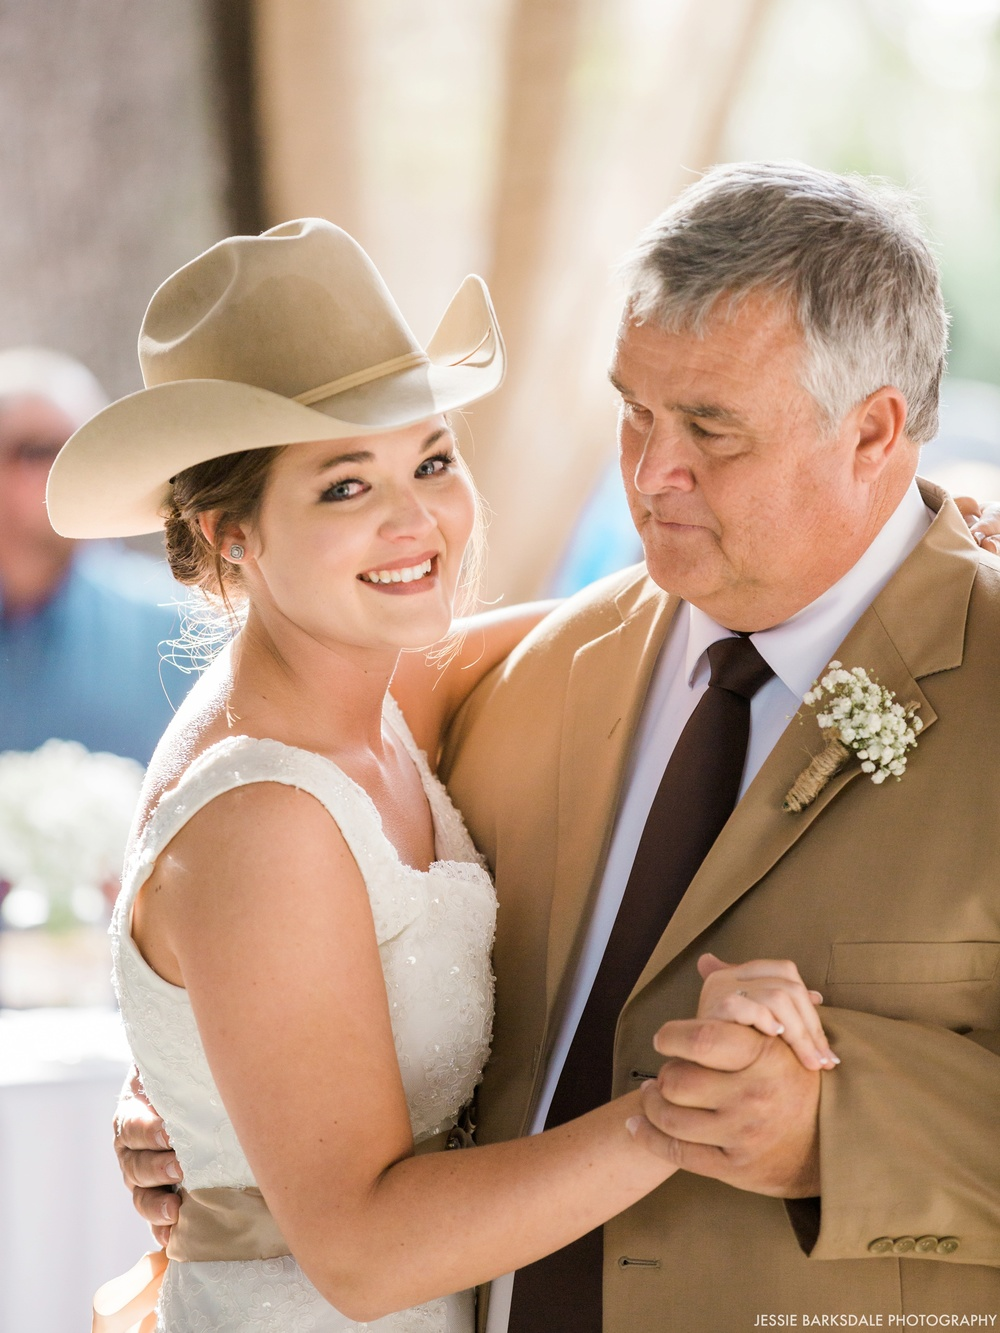 Jessie Barksdale Photography_Cowboy Hat_Father Daughter Dance_Fall Wedding Inspiration_Bridal Party_Dark Purple Plum Eggplant Bridesmaids Dress_Birmingham Montgomery Alabama Wedding Photographer